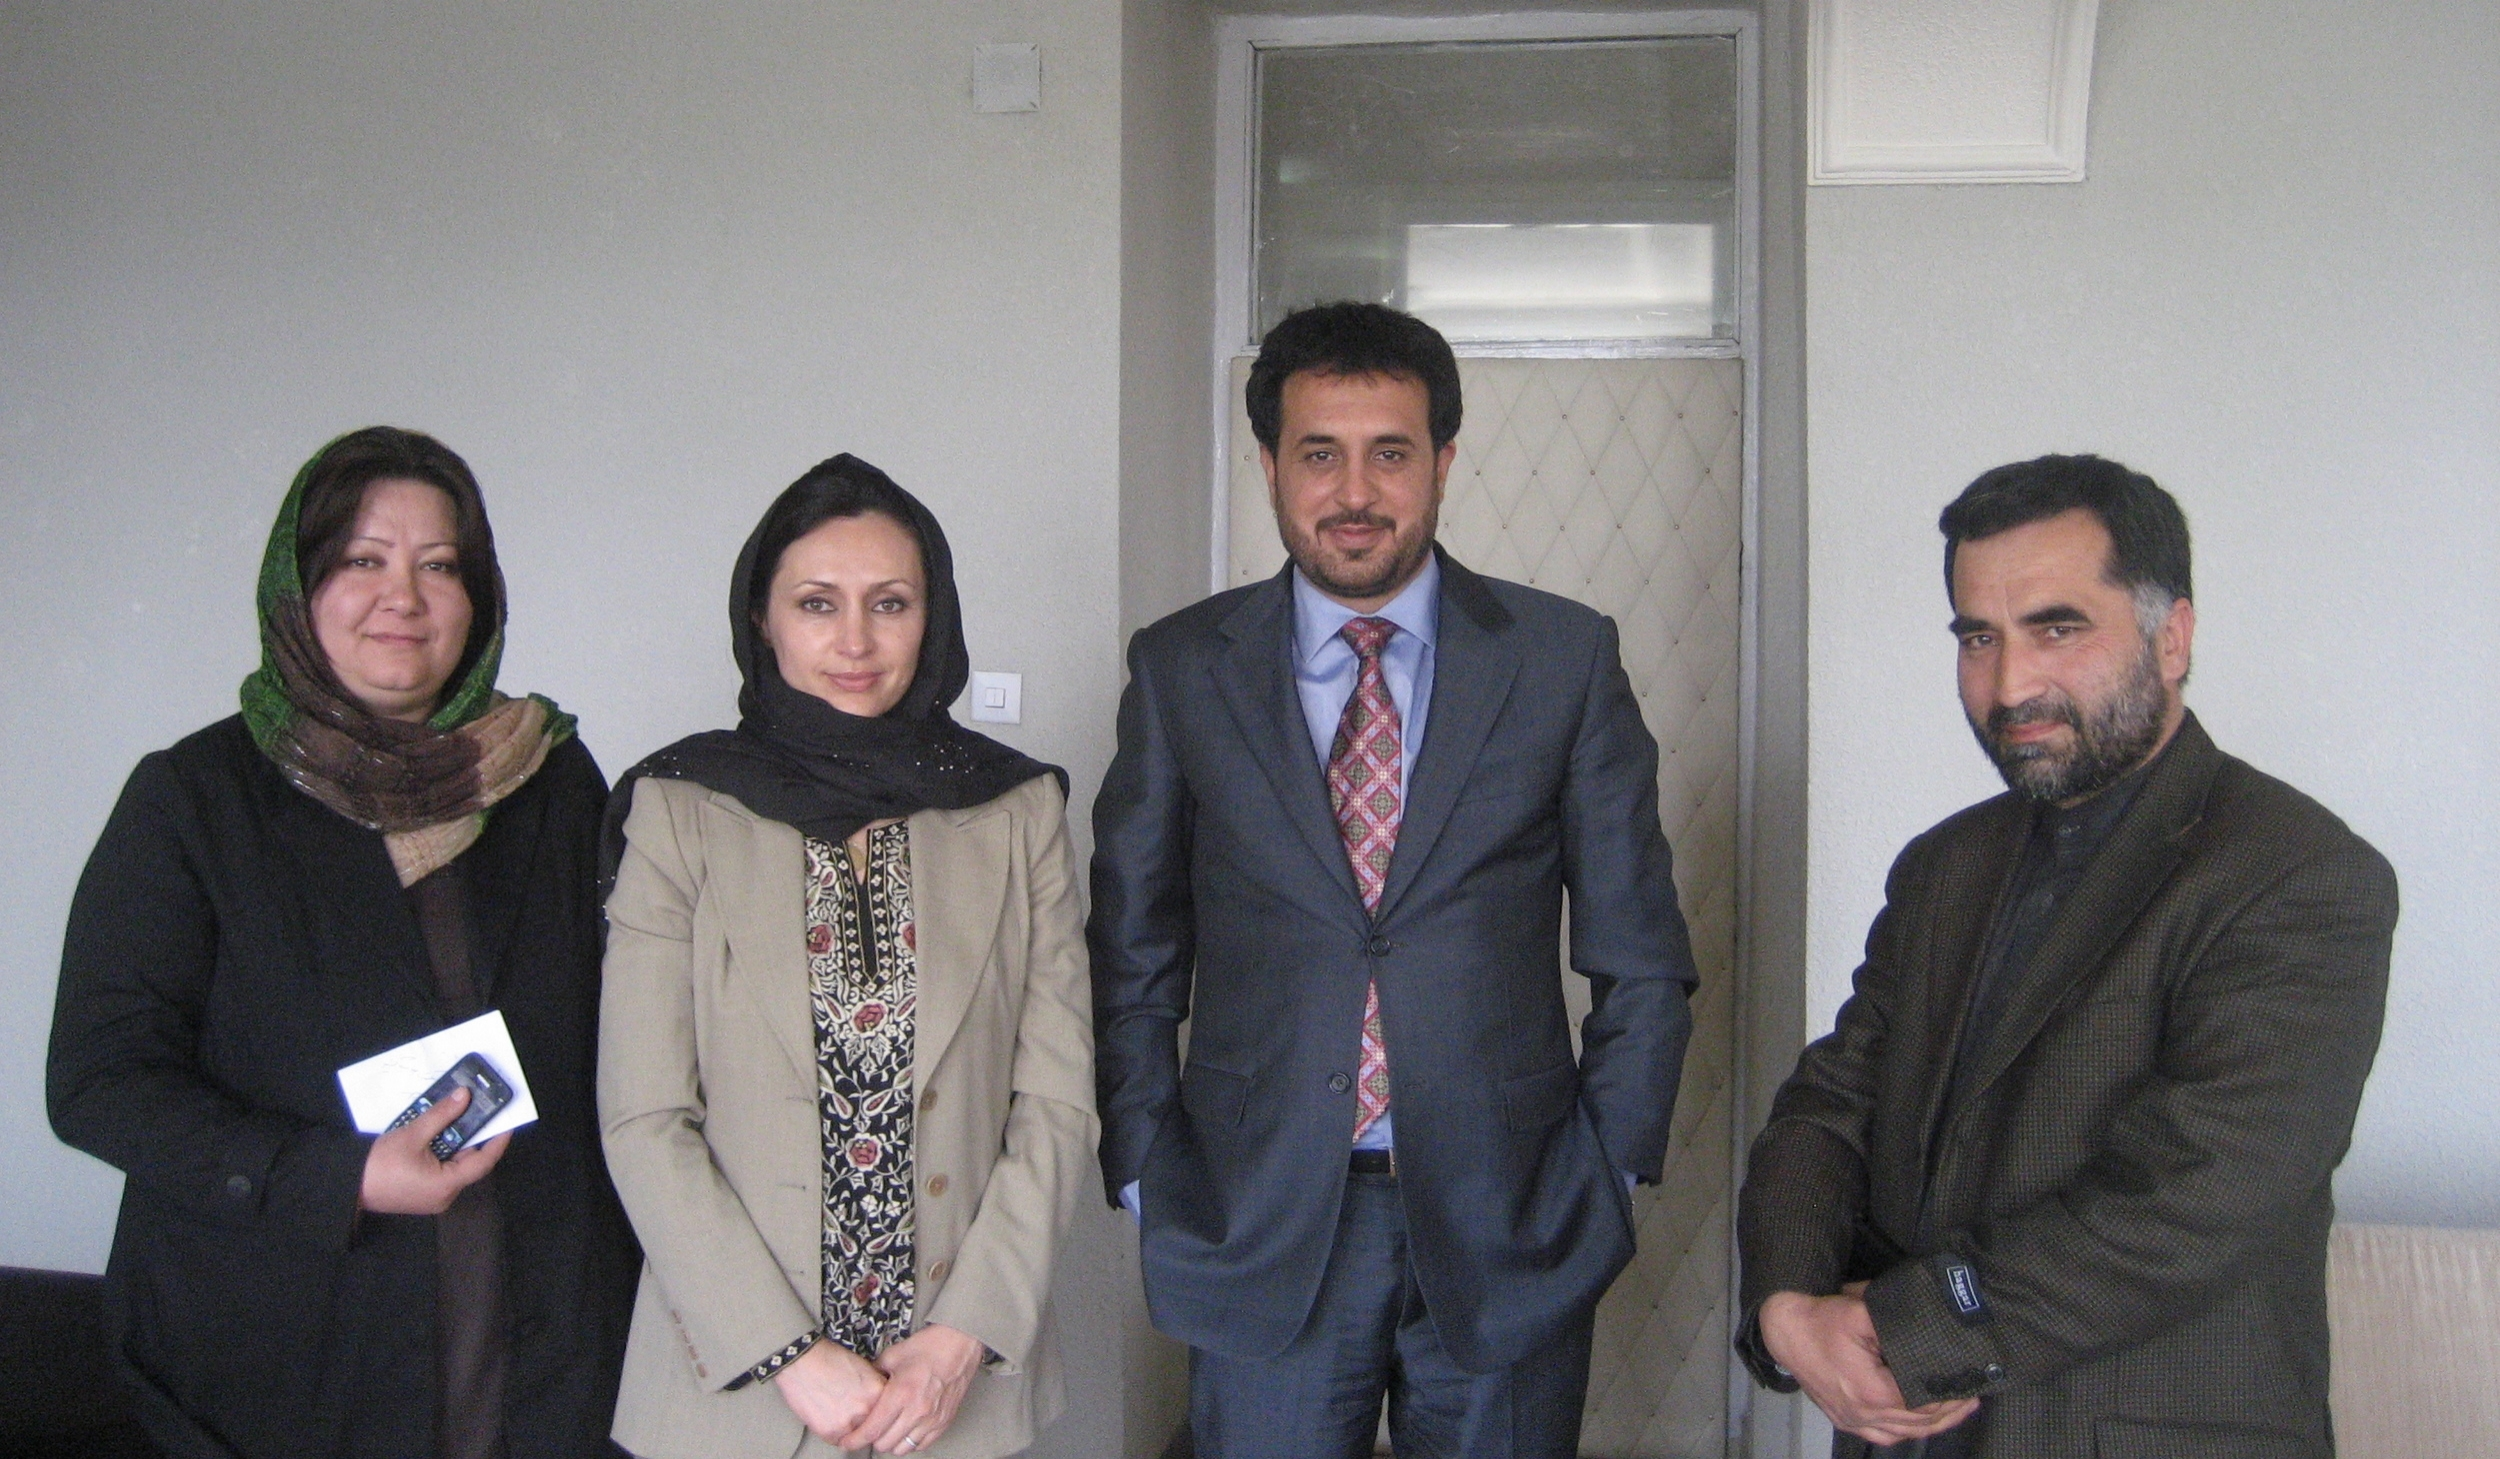 With Minister Khaled—Kabul, Afghanistan